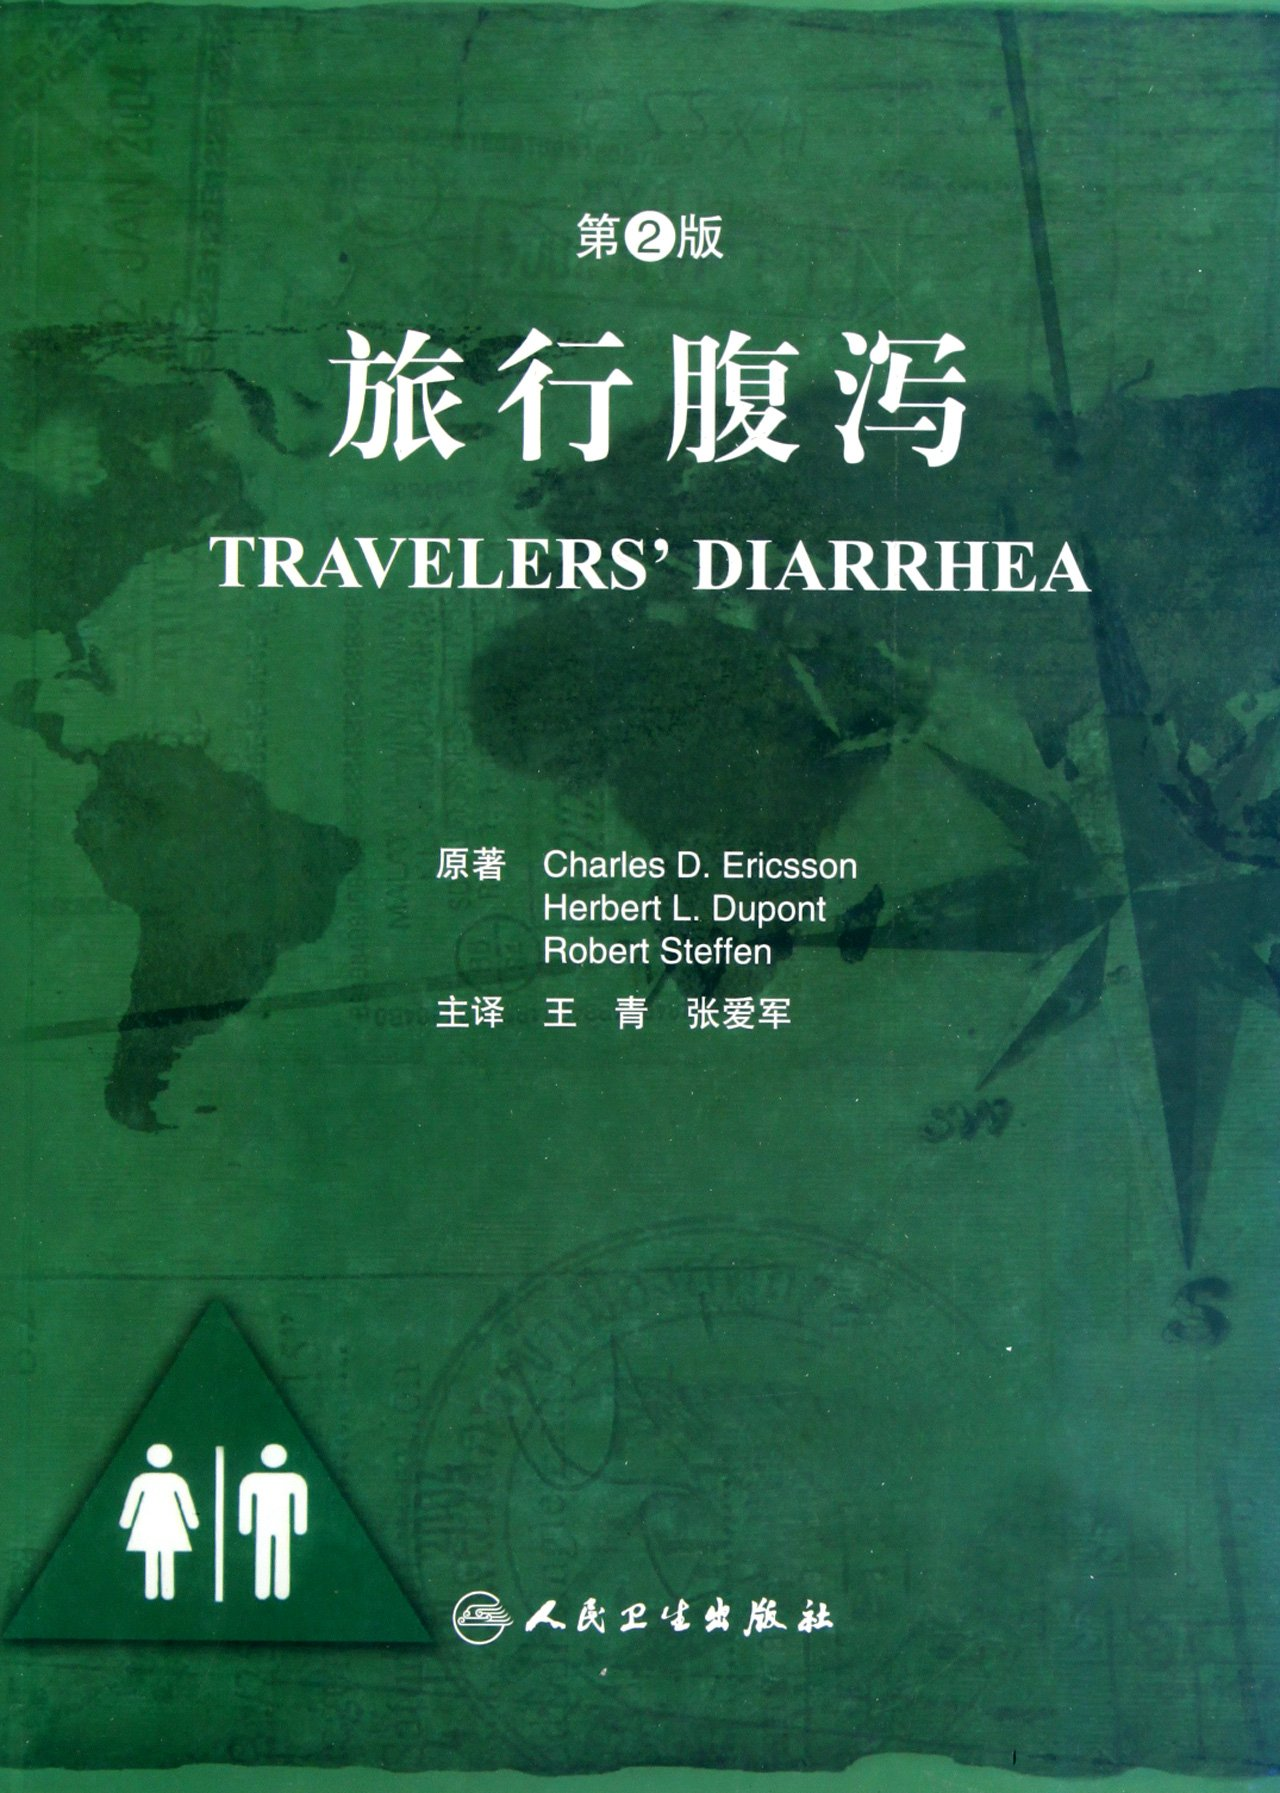 Travelers' Diarrhea--The Second Edition (Chinese Edition) ebook